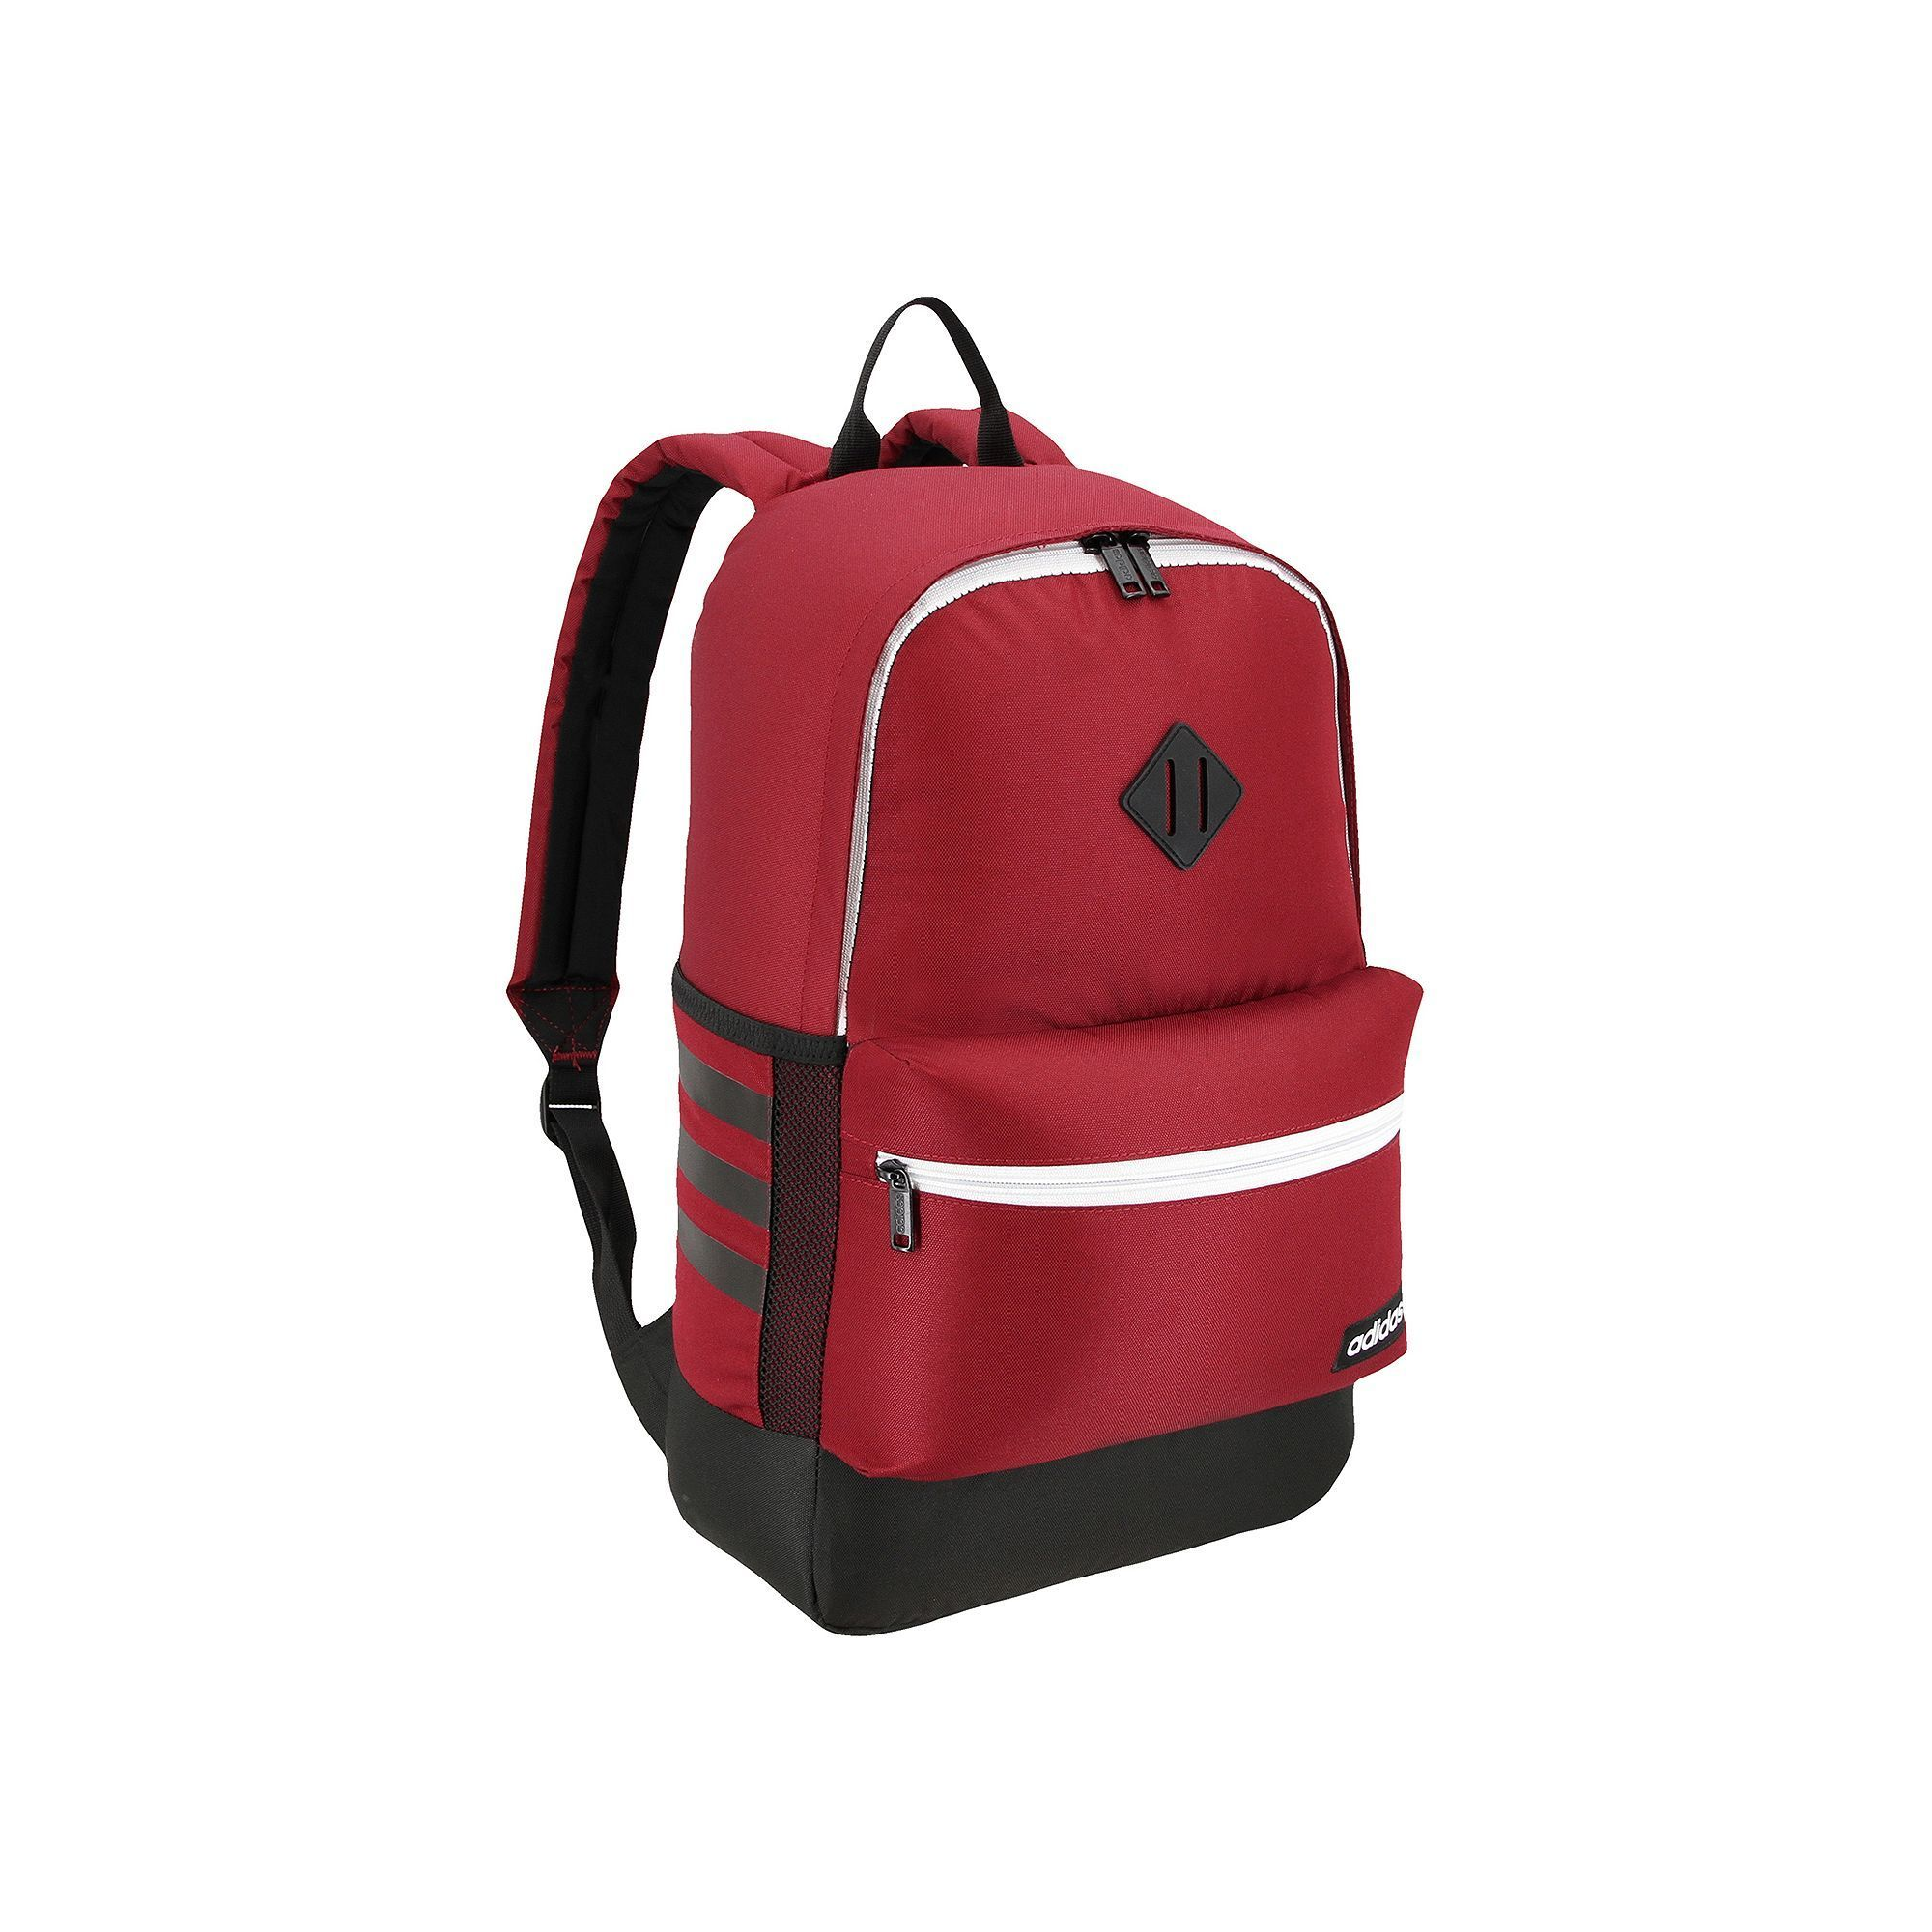 0c7495f6e1 adidas Neo Classic 3s Laptop Backpack